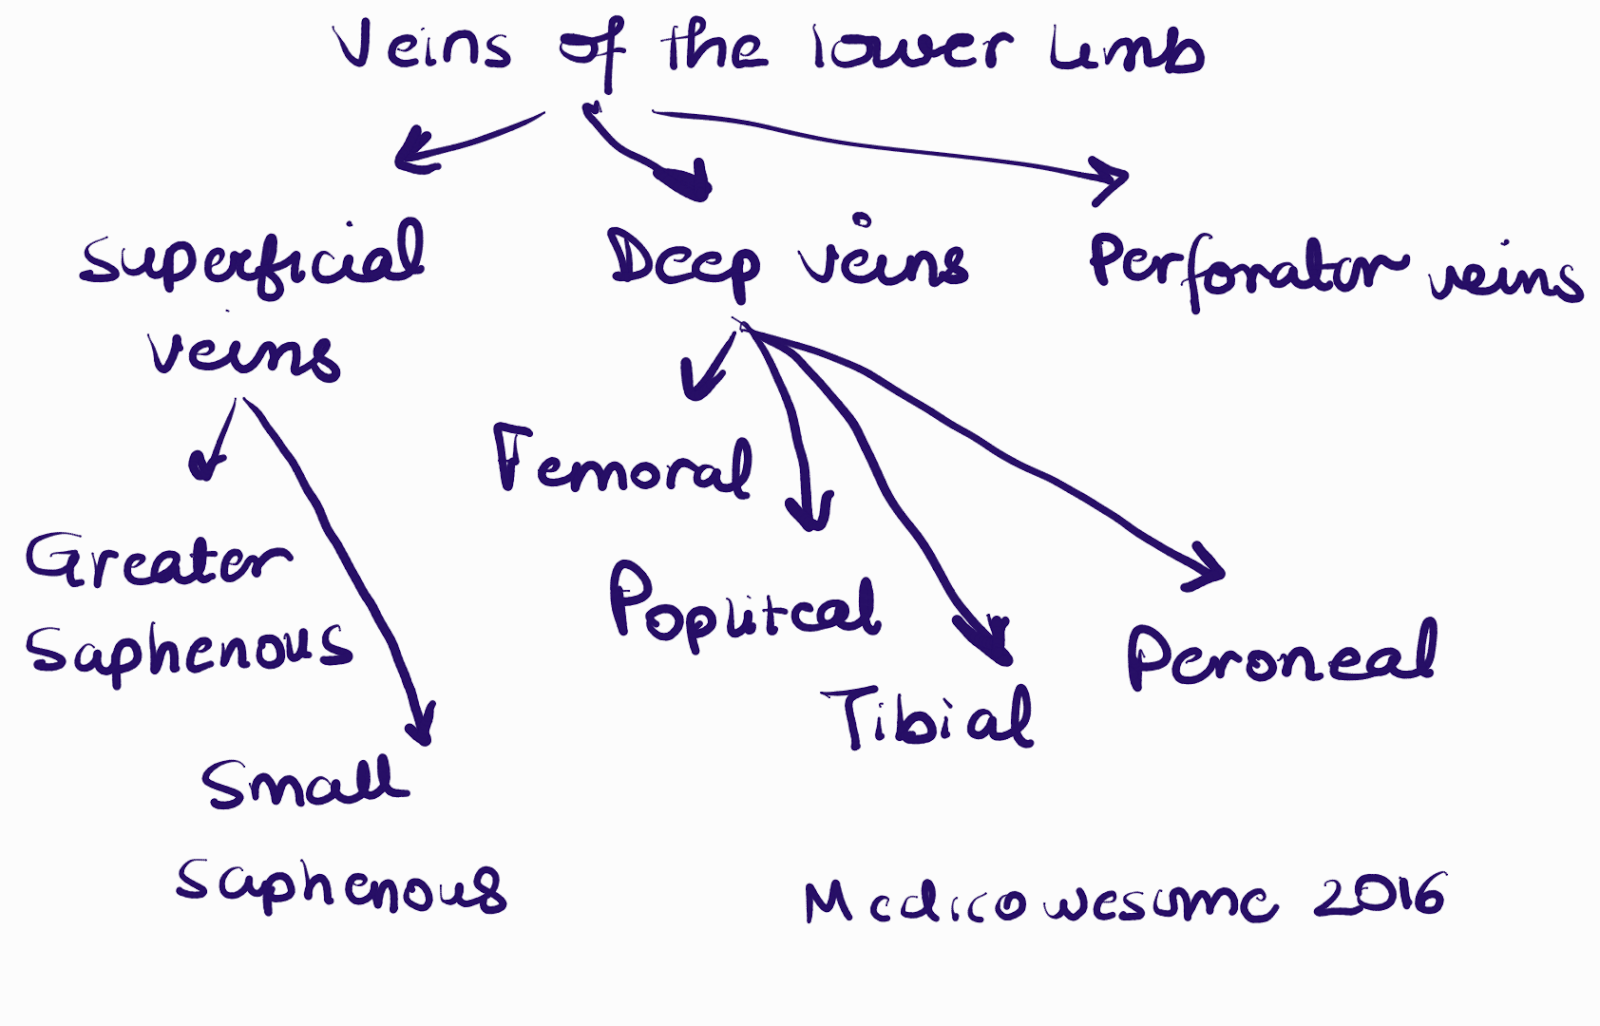 Medicowesome Superficial And Deep Veins In Upper And Lower